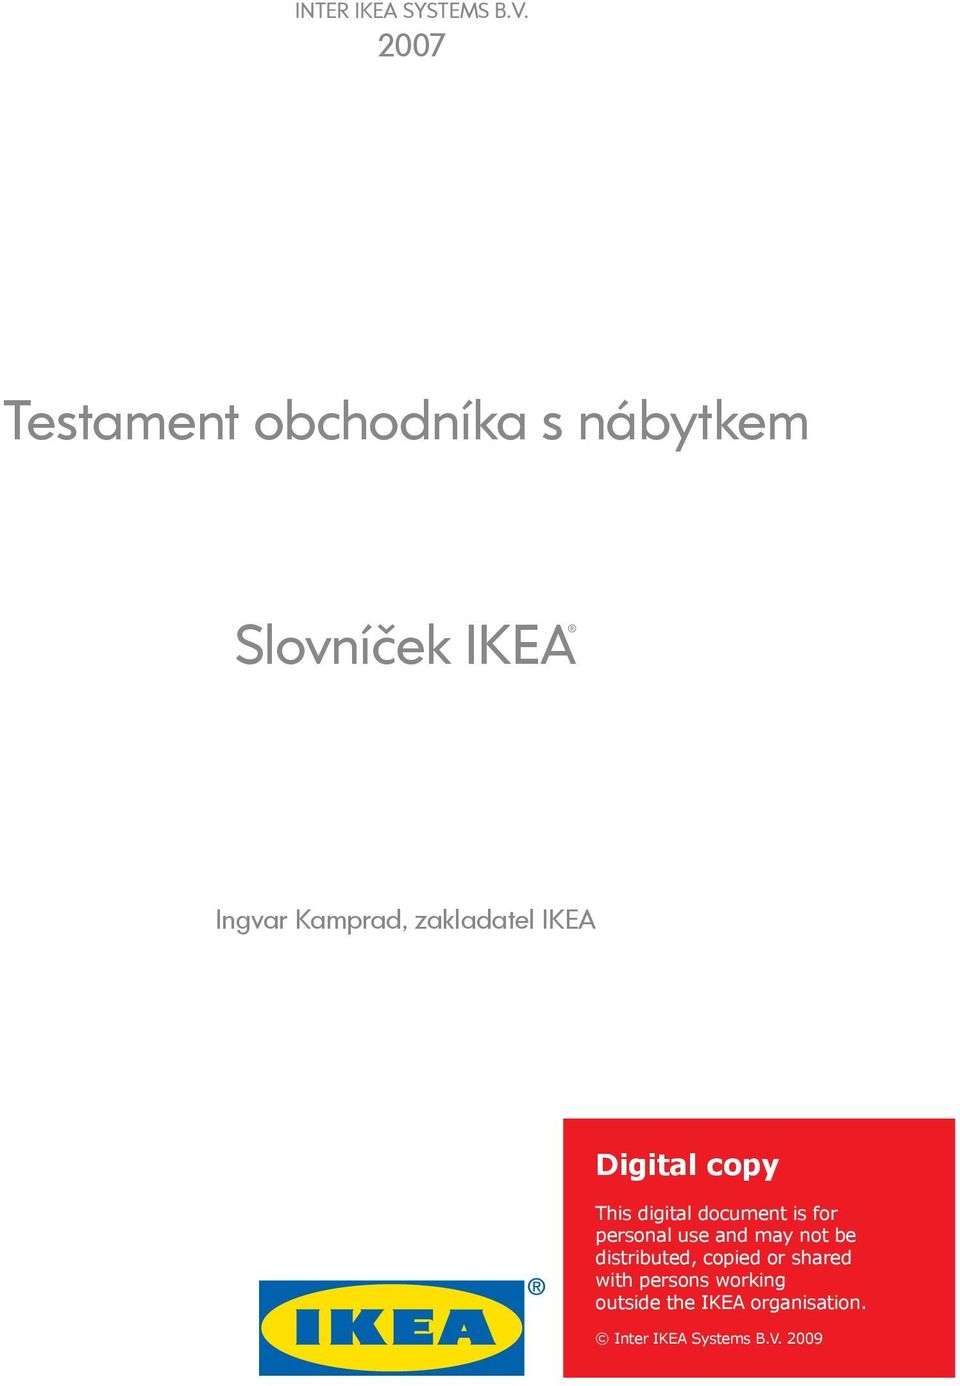 zakladatel IKEA Digital copy This digital document is for personal use